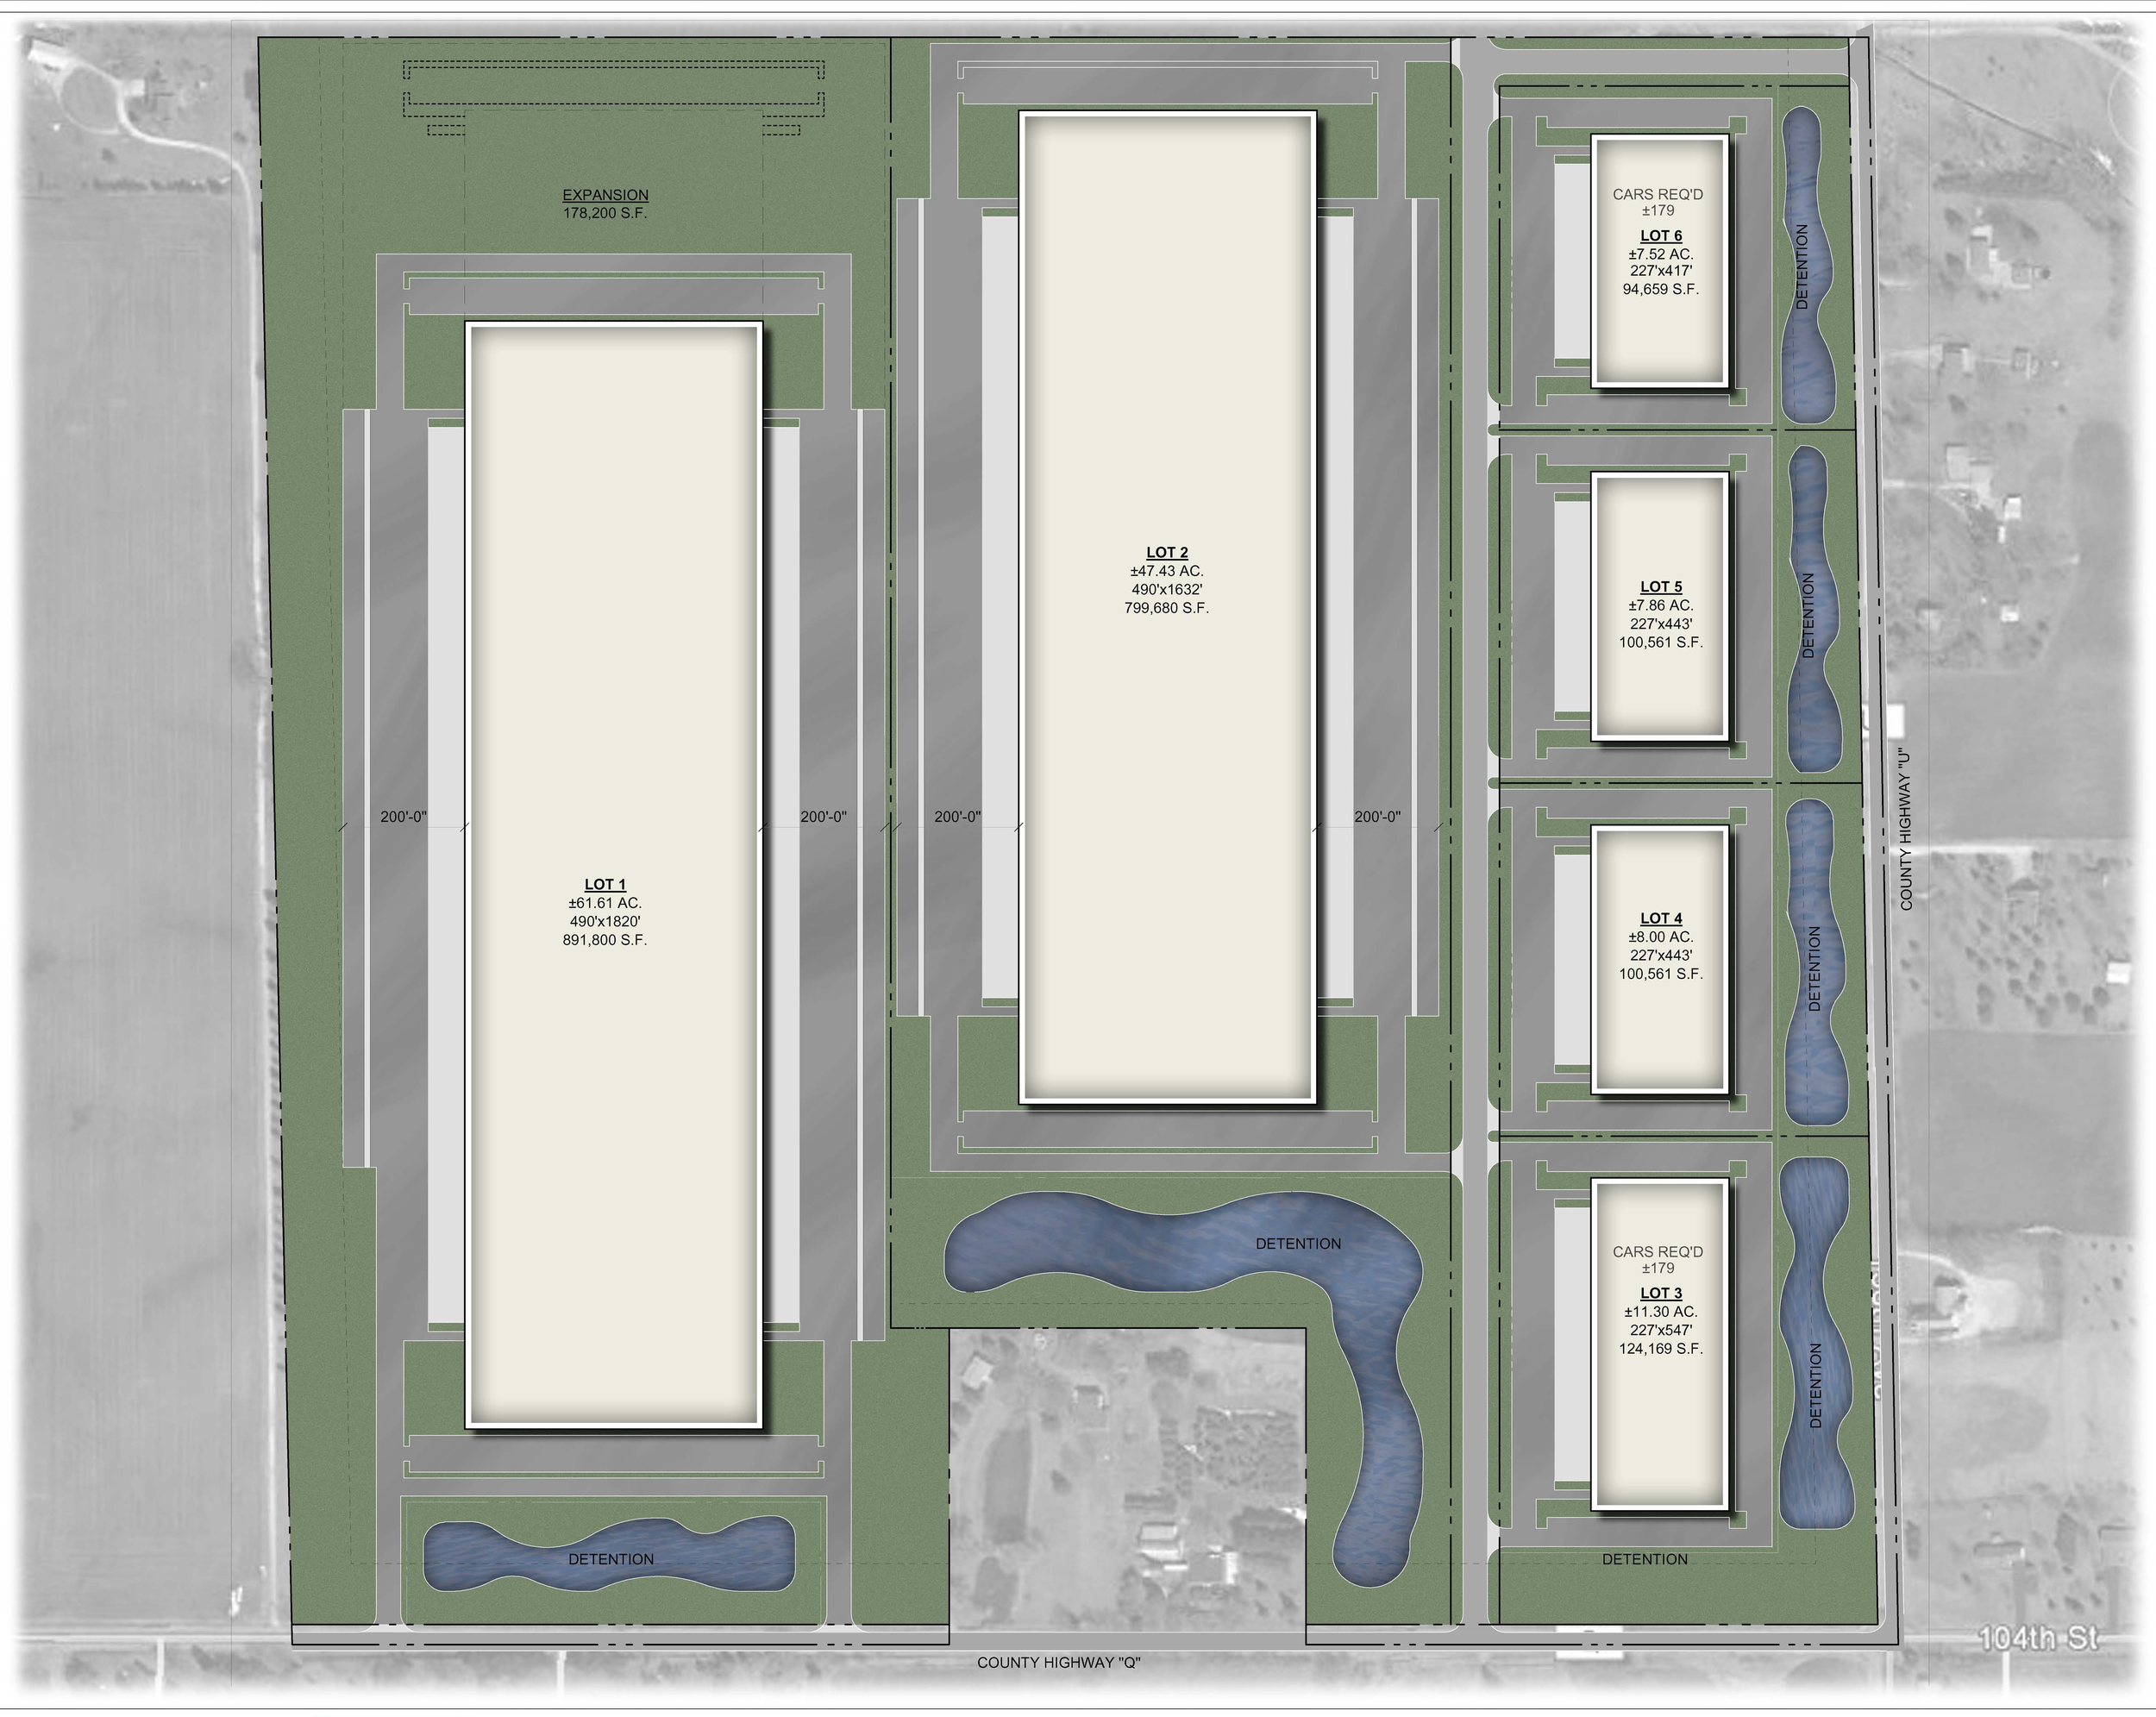 Bristol Site Plan SchemeB_Color_01-21-16_cropped.png